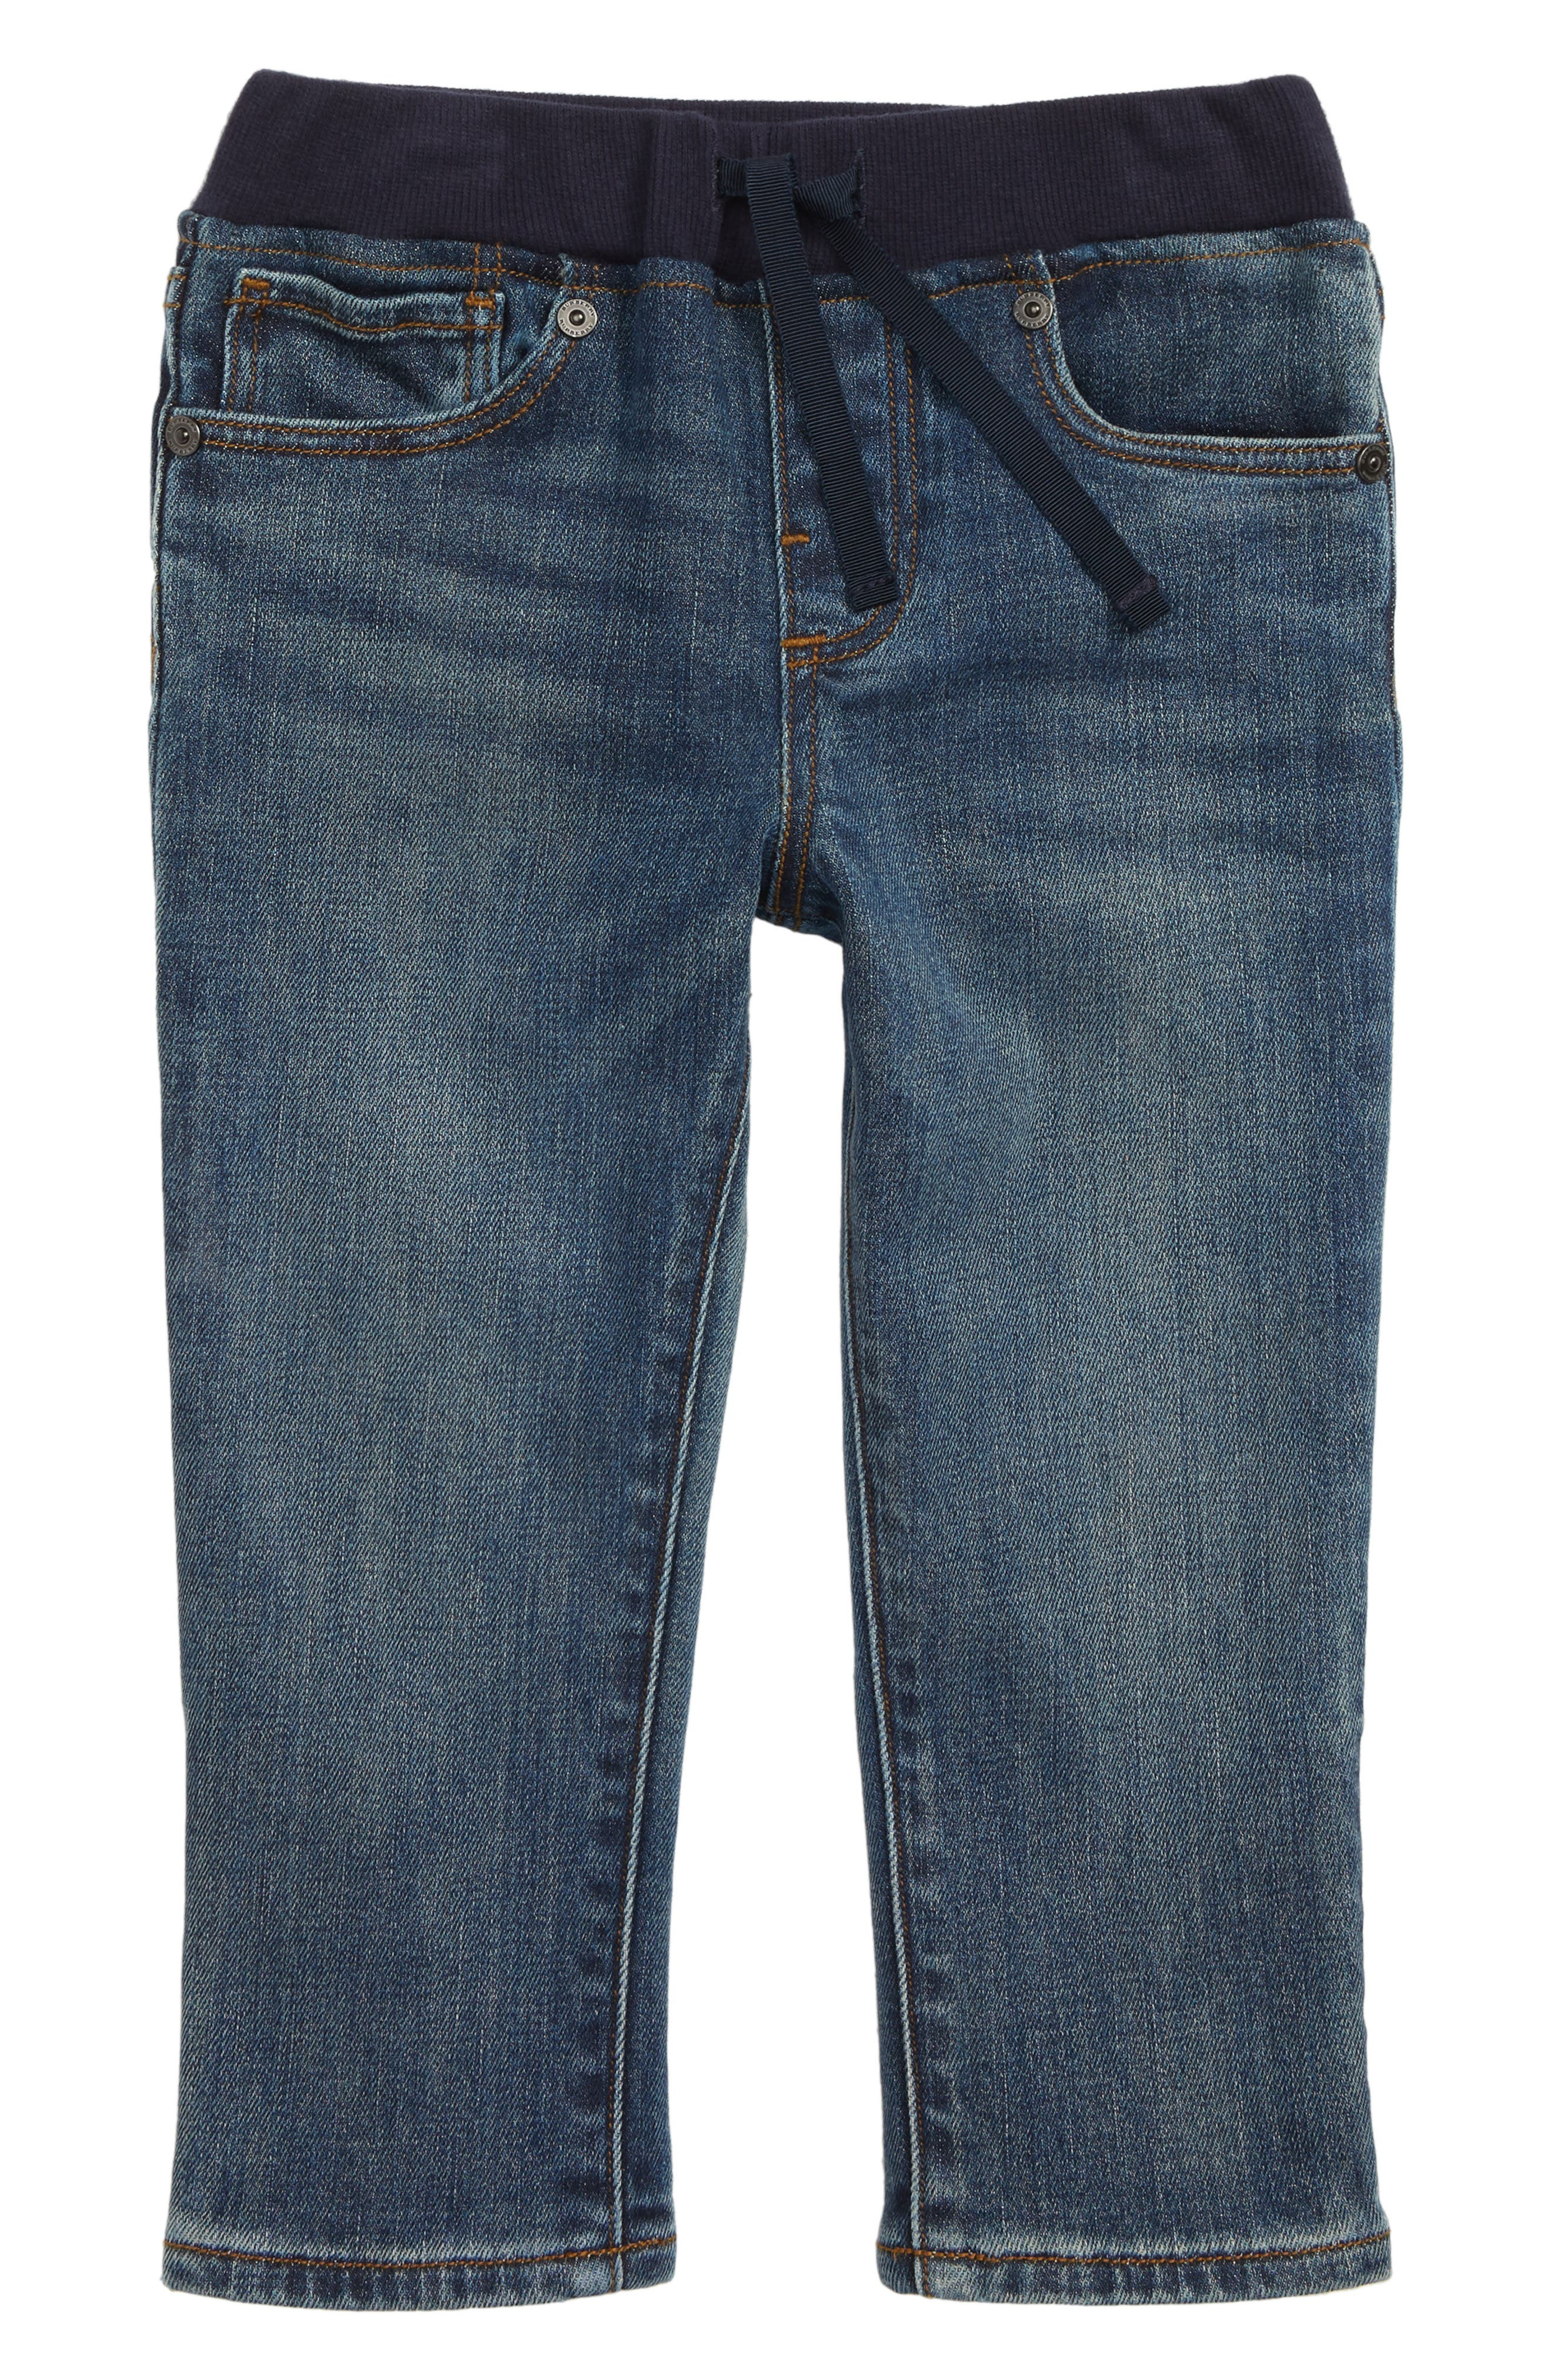 Pull-On Jeans,                         Main,                         color, MID INDIGO